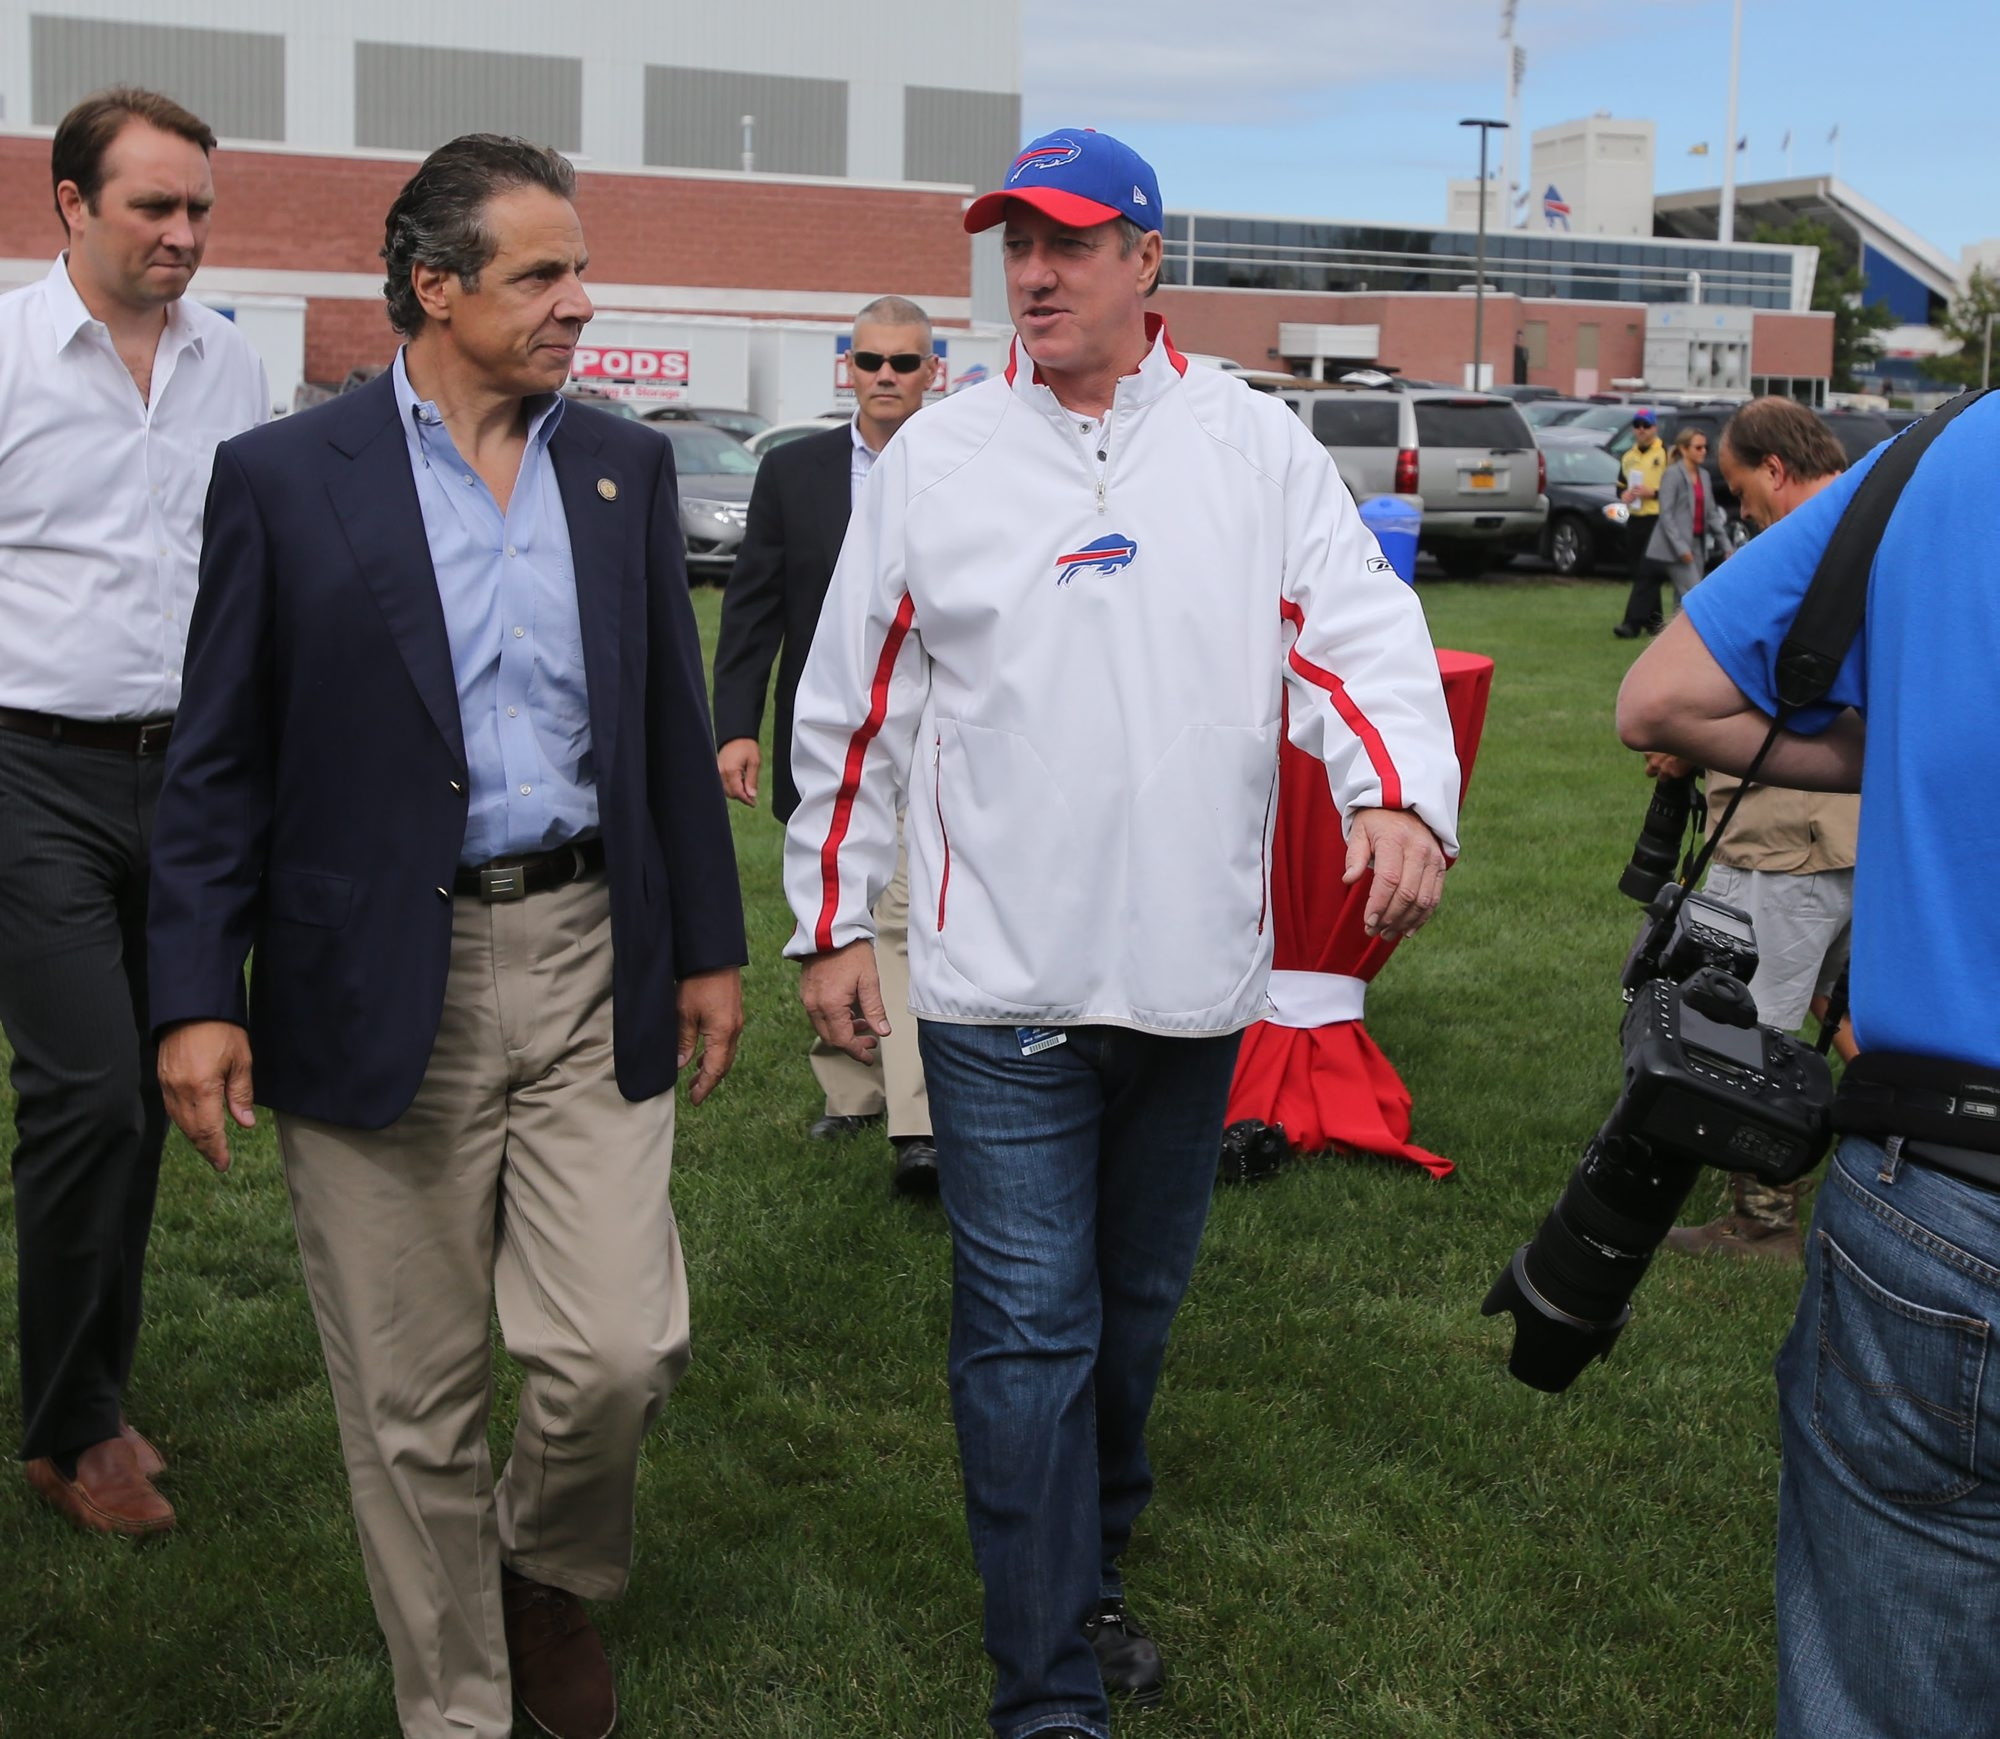 """New York Gov. Andrew Cuomo, left, talks with former Buffalo Bills quarterback Jim Kelly, outside of Ralph Wilson Stadium in Orchard Park during the """"Governor's Tailgate Party"""", Sunday, September 8, 2013.  (Charles Lewis/Buffalo News)"""